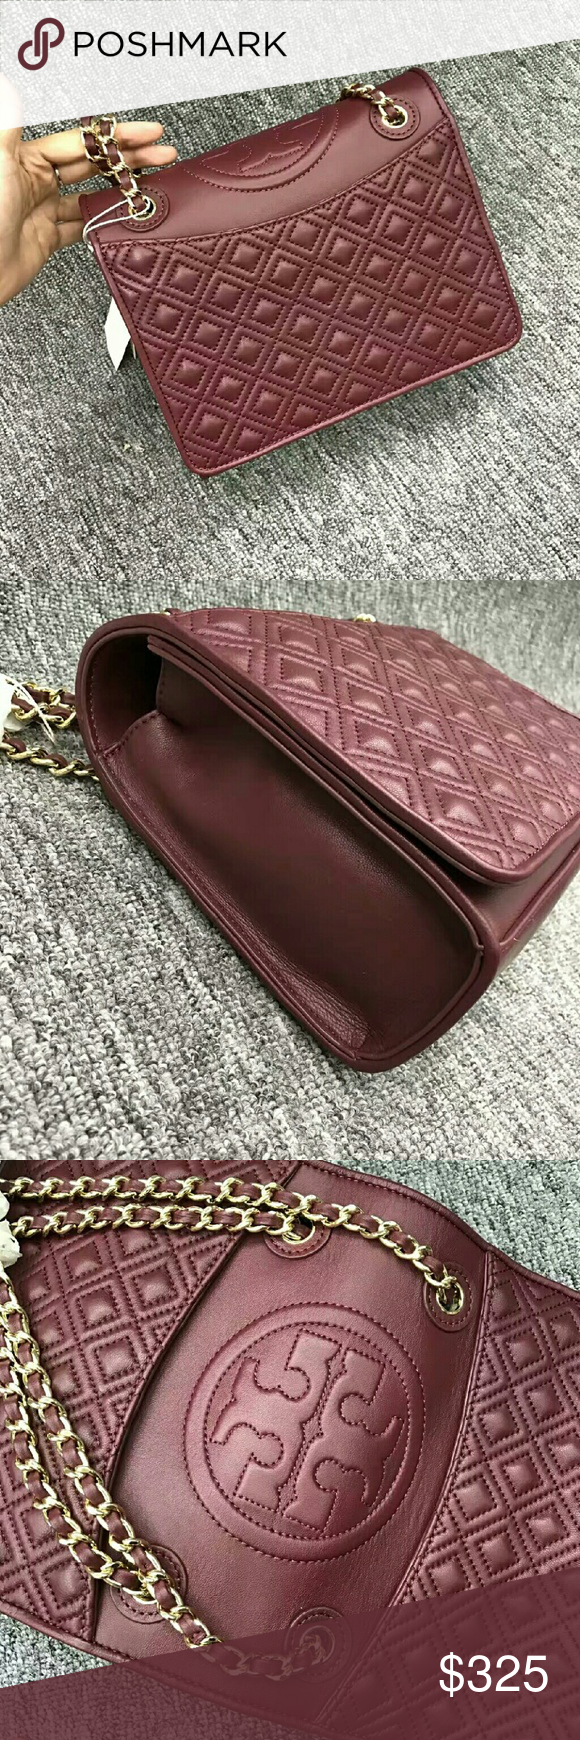 Tory Burch Wine Red Fleming Medium Bag This Is Made Of Supple Convert Leather Detailed With